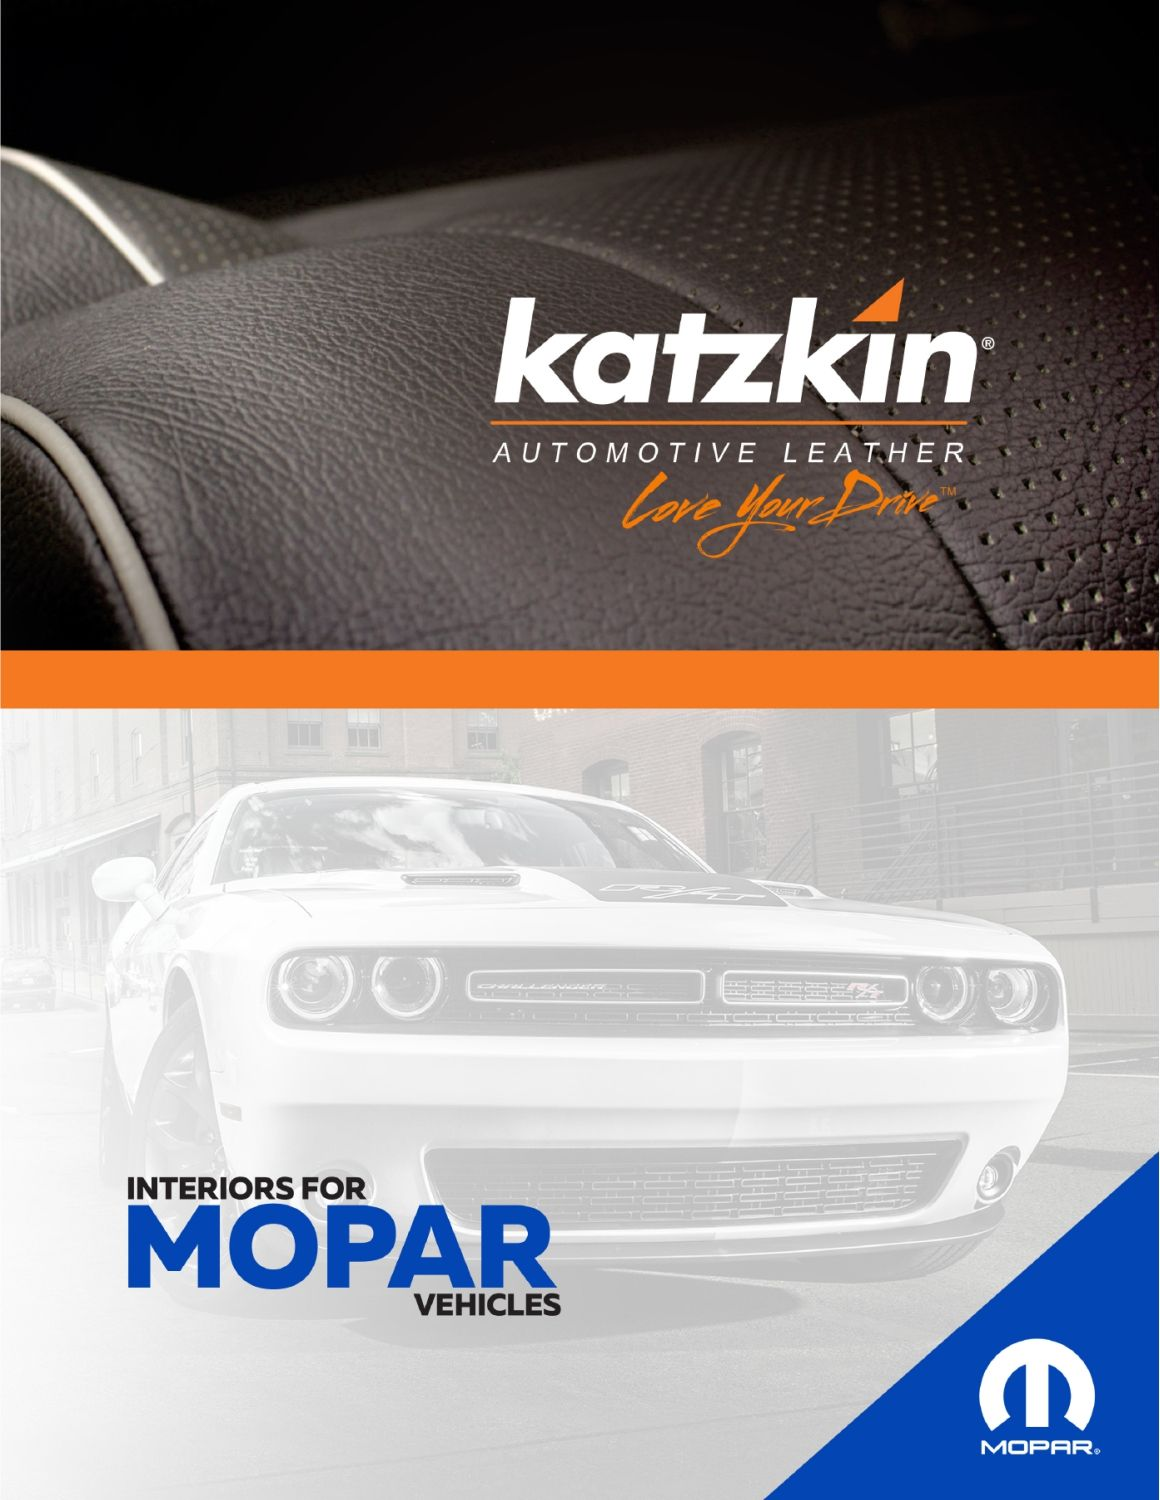 2017 MOPAR catalog